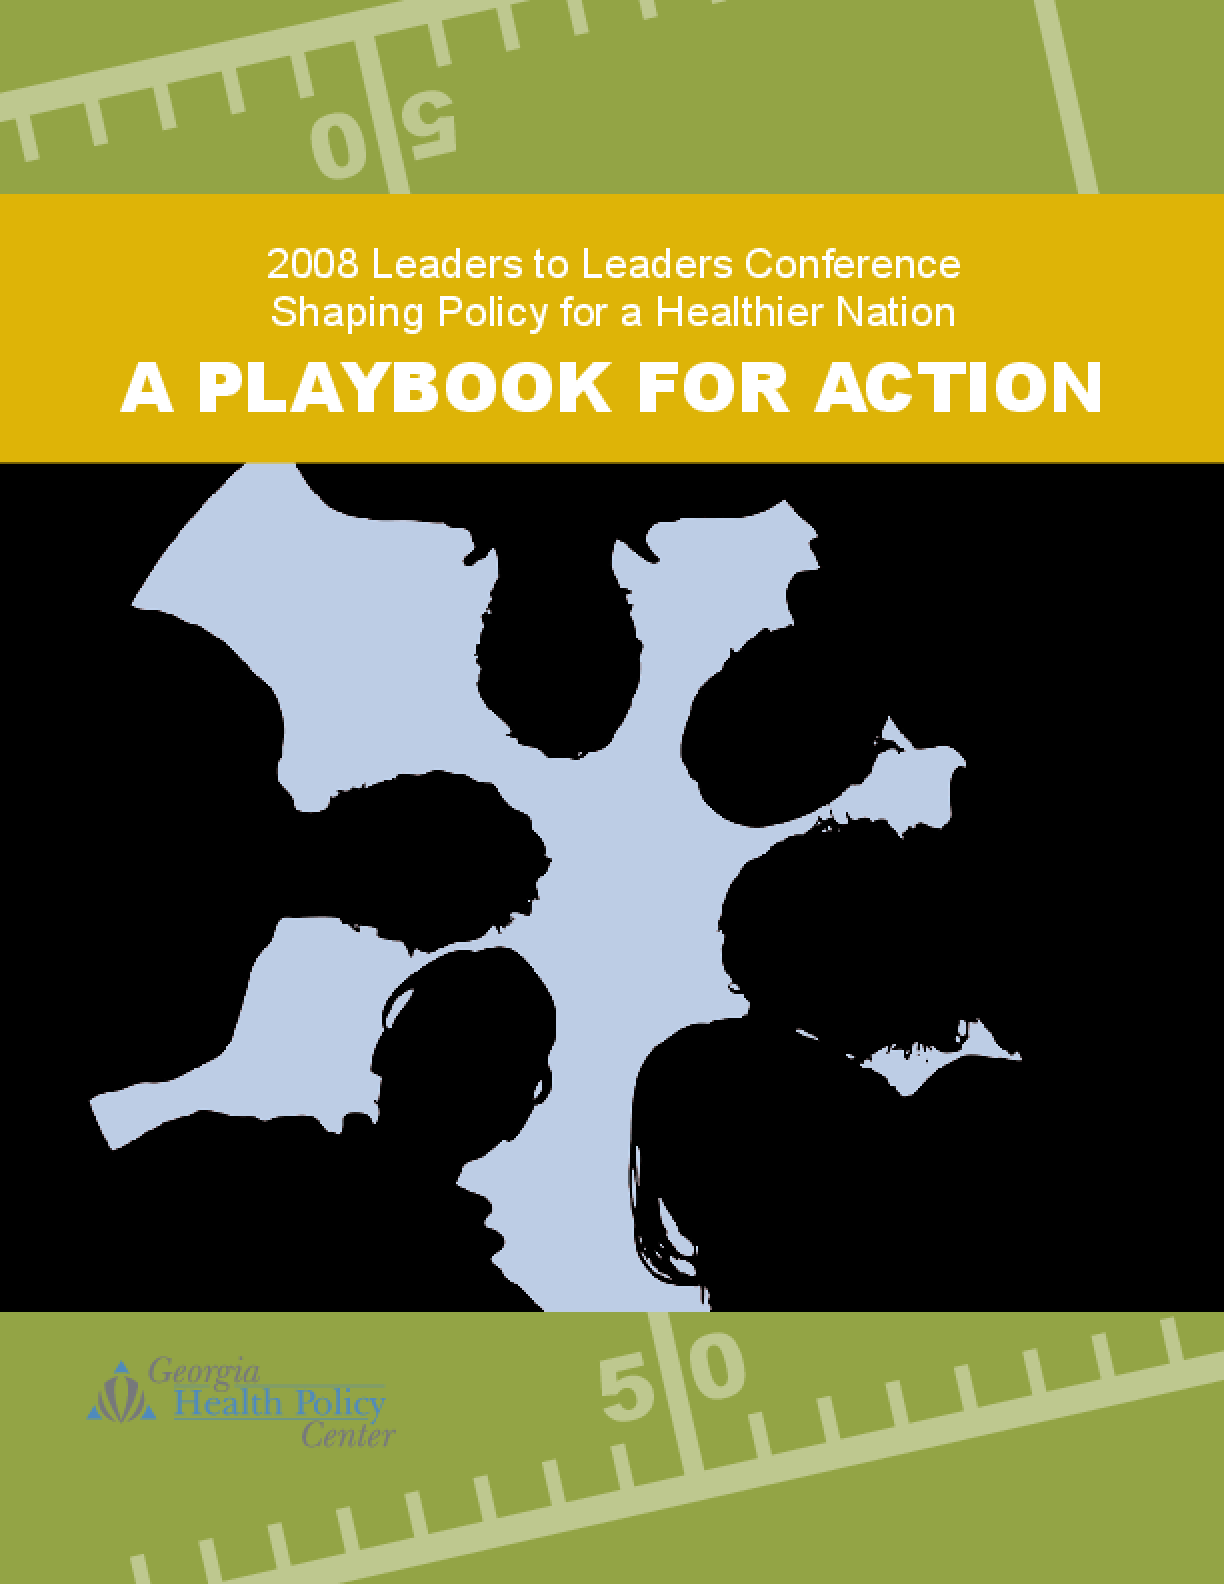 A Playbook for Action, 2008 Leaders to Leaders Conference: Shaping Policy for a Healthier Nation